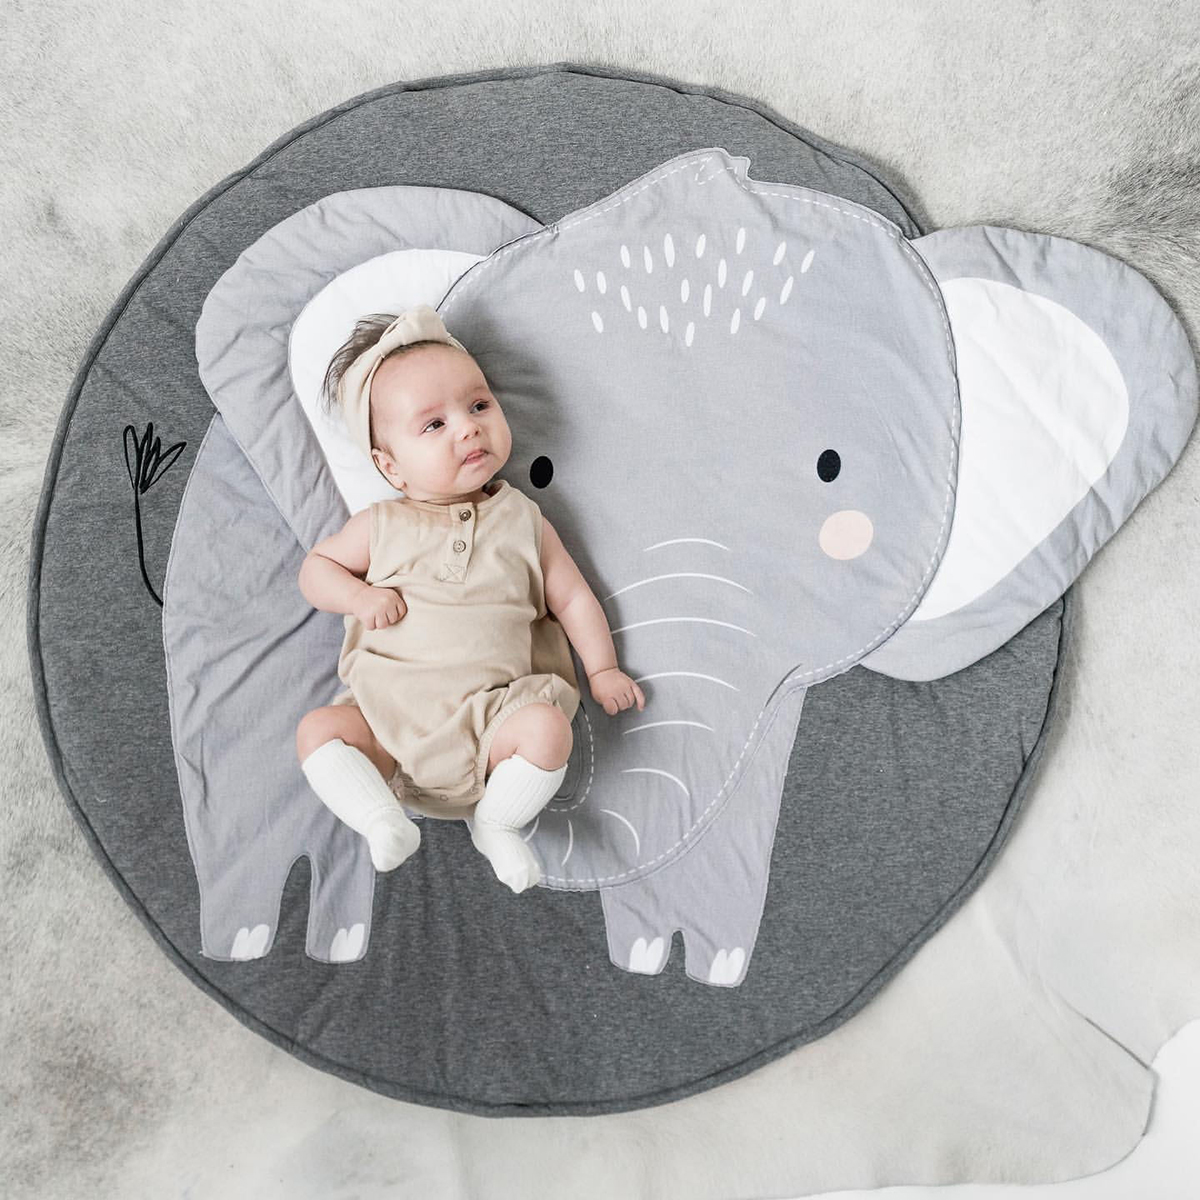 Puseky Cartoon Baby Play Mats Pad Toddler Kids Crawling Blanket Round Carpet Rug Toys Mat For Children Room Decor Photo Props